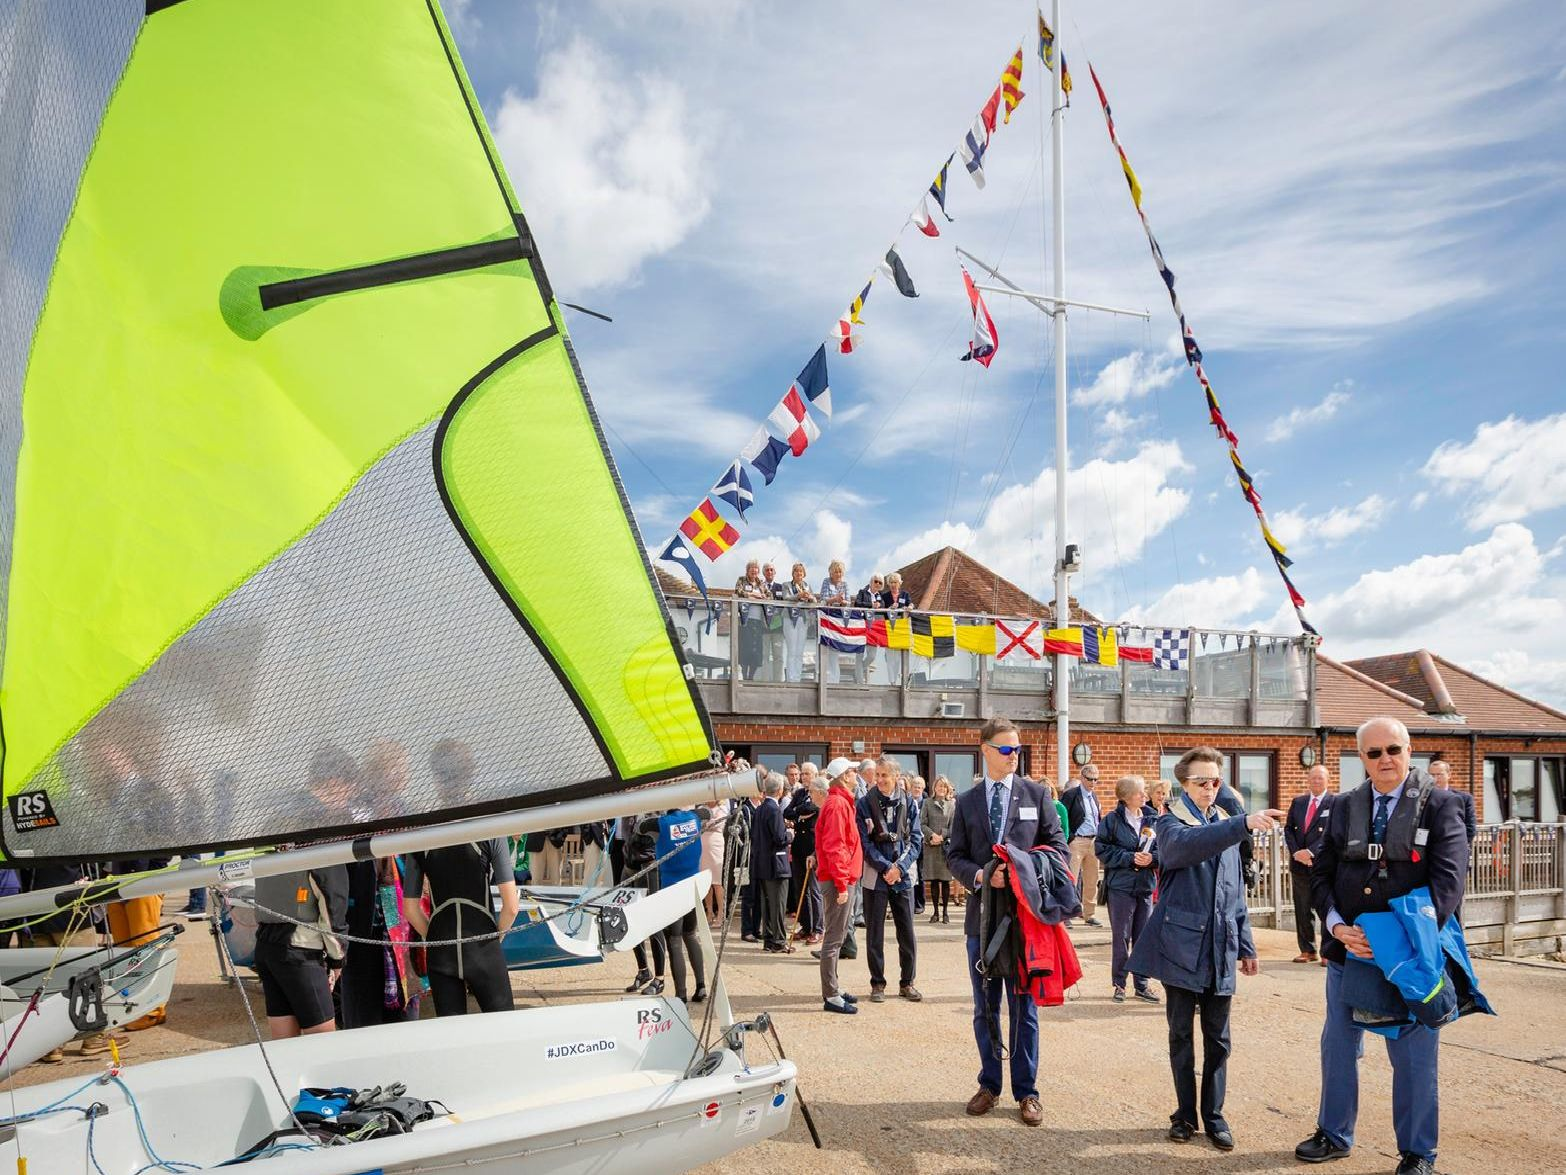 HRH The Princess Royal pictured during her visit to Emsworth Sailing Club today. The visit was arranged to help the club celebrate its centenary.